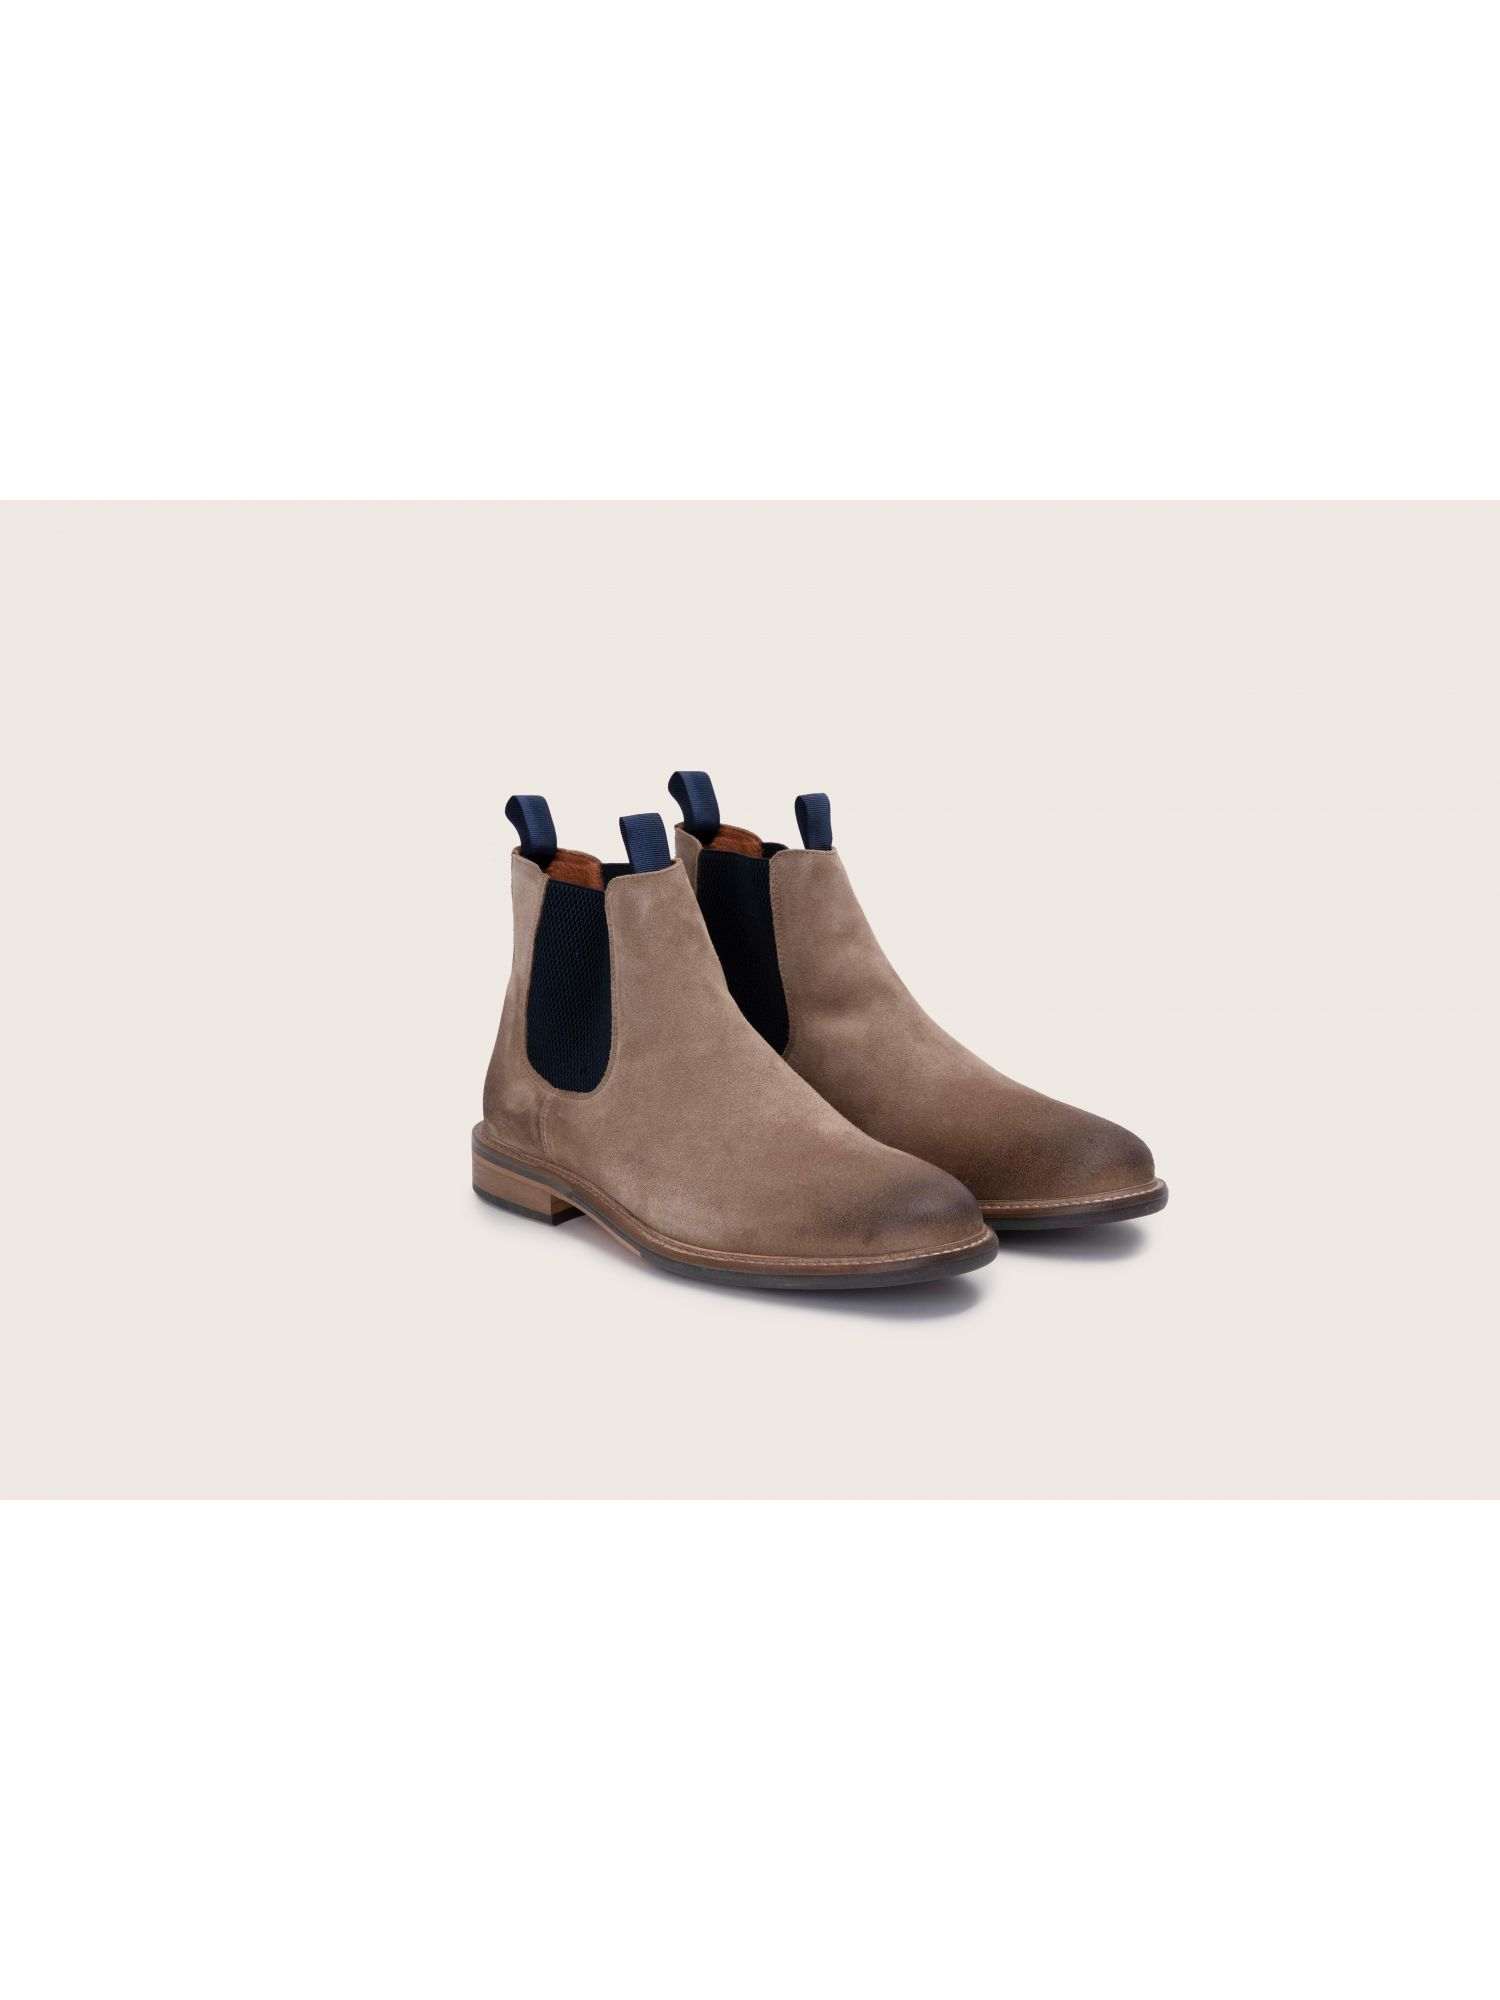 schmoove.fr Pilot Chelsea - Suede - Taupe/Navy